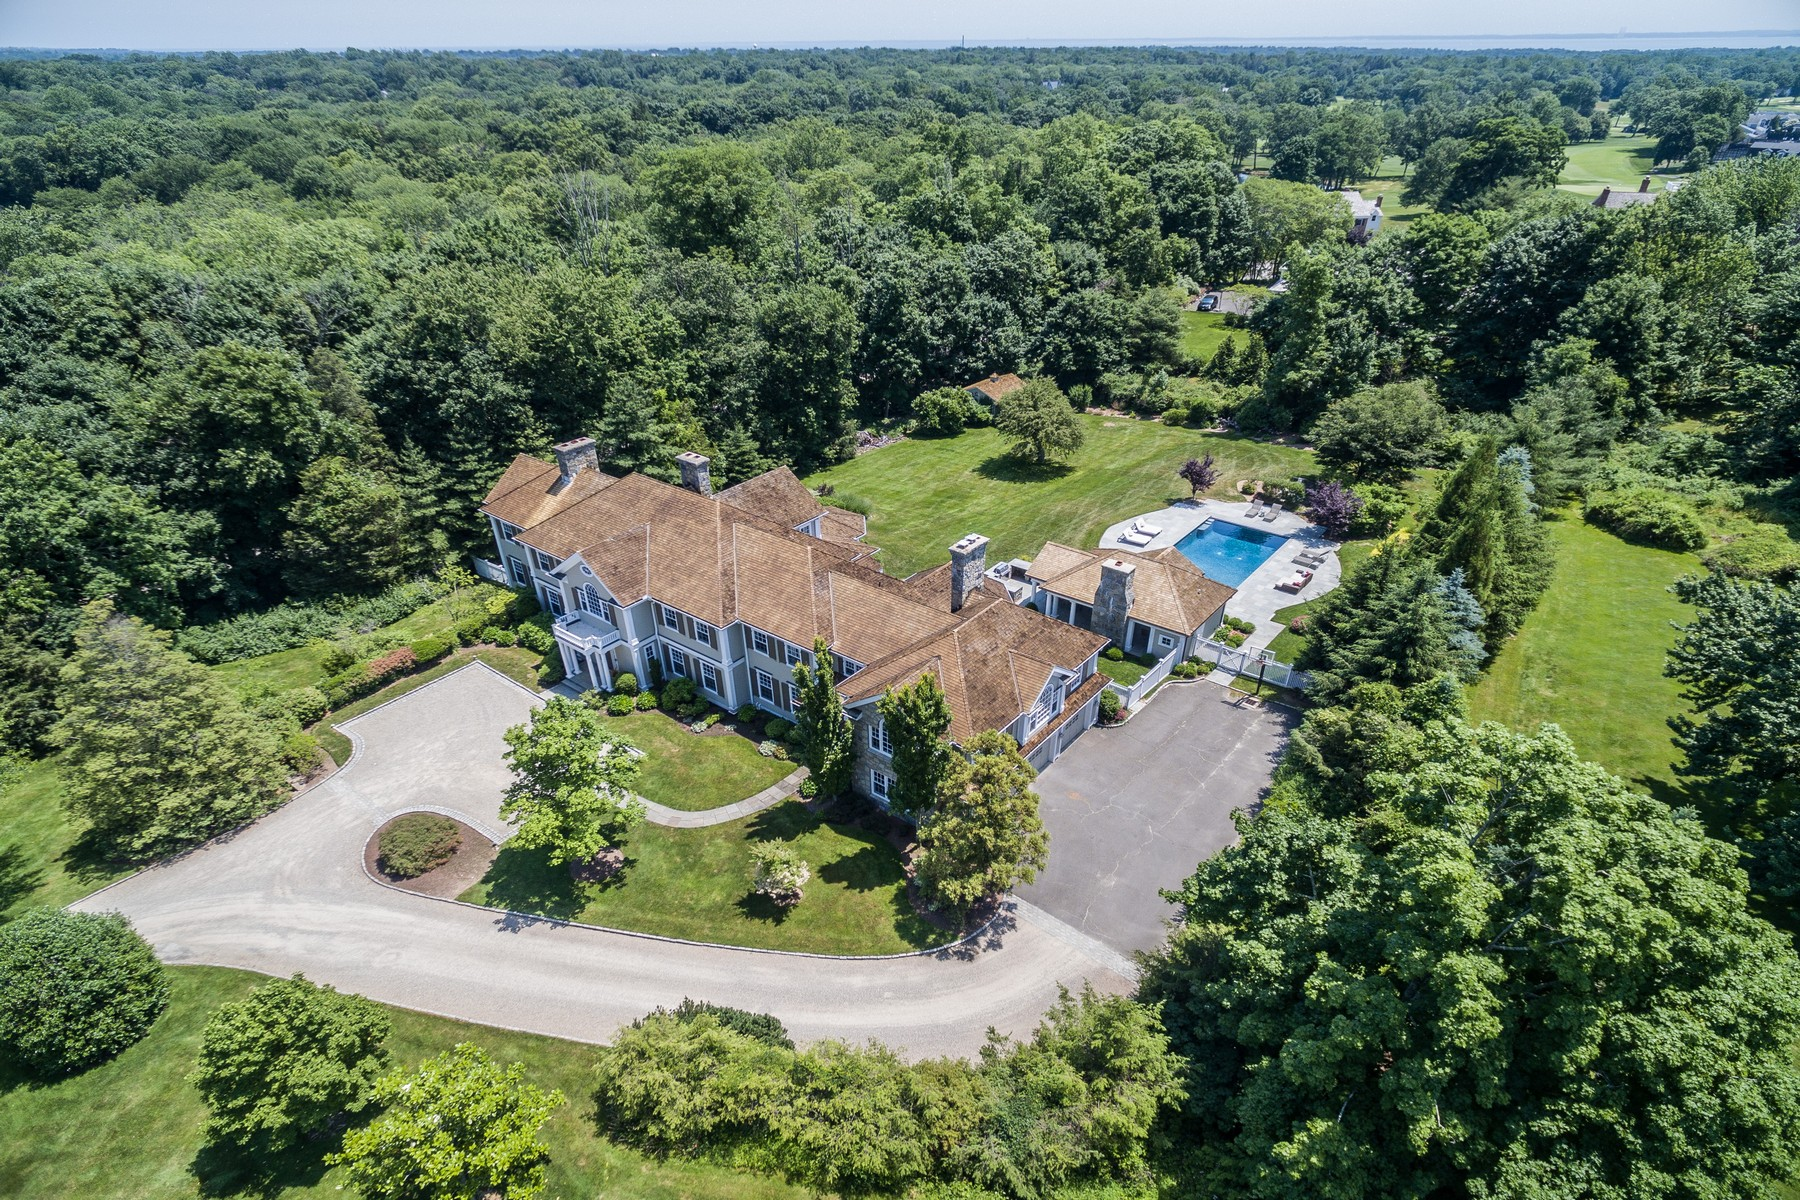 Single Family Home for Sale at Magnificent Darien Estate 38 Pembroke Road Darien, Connecticut, 06820 United States